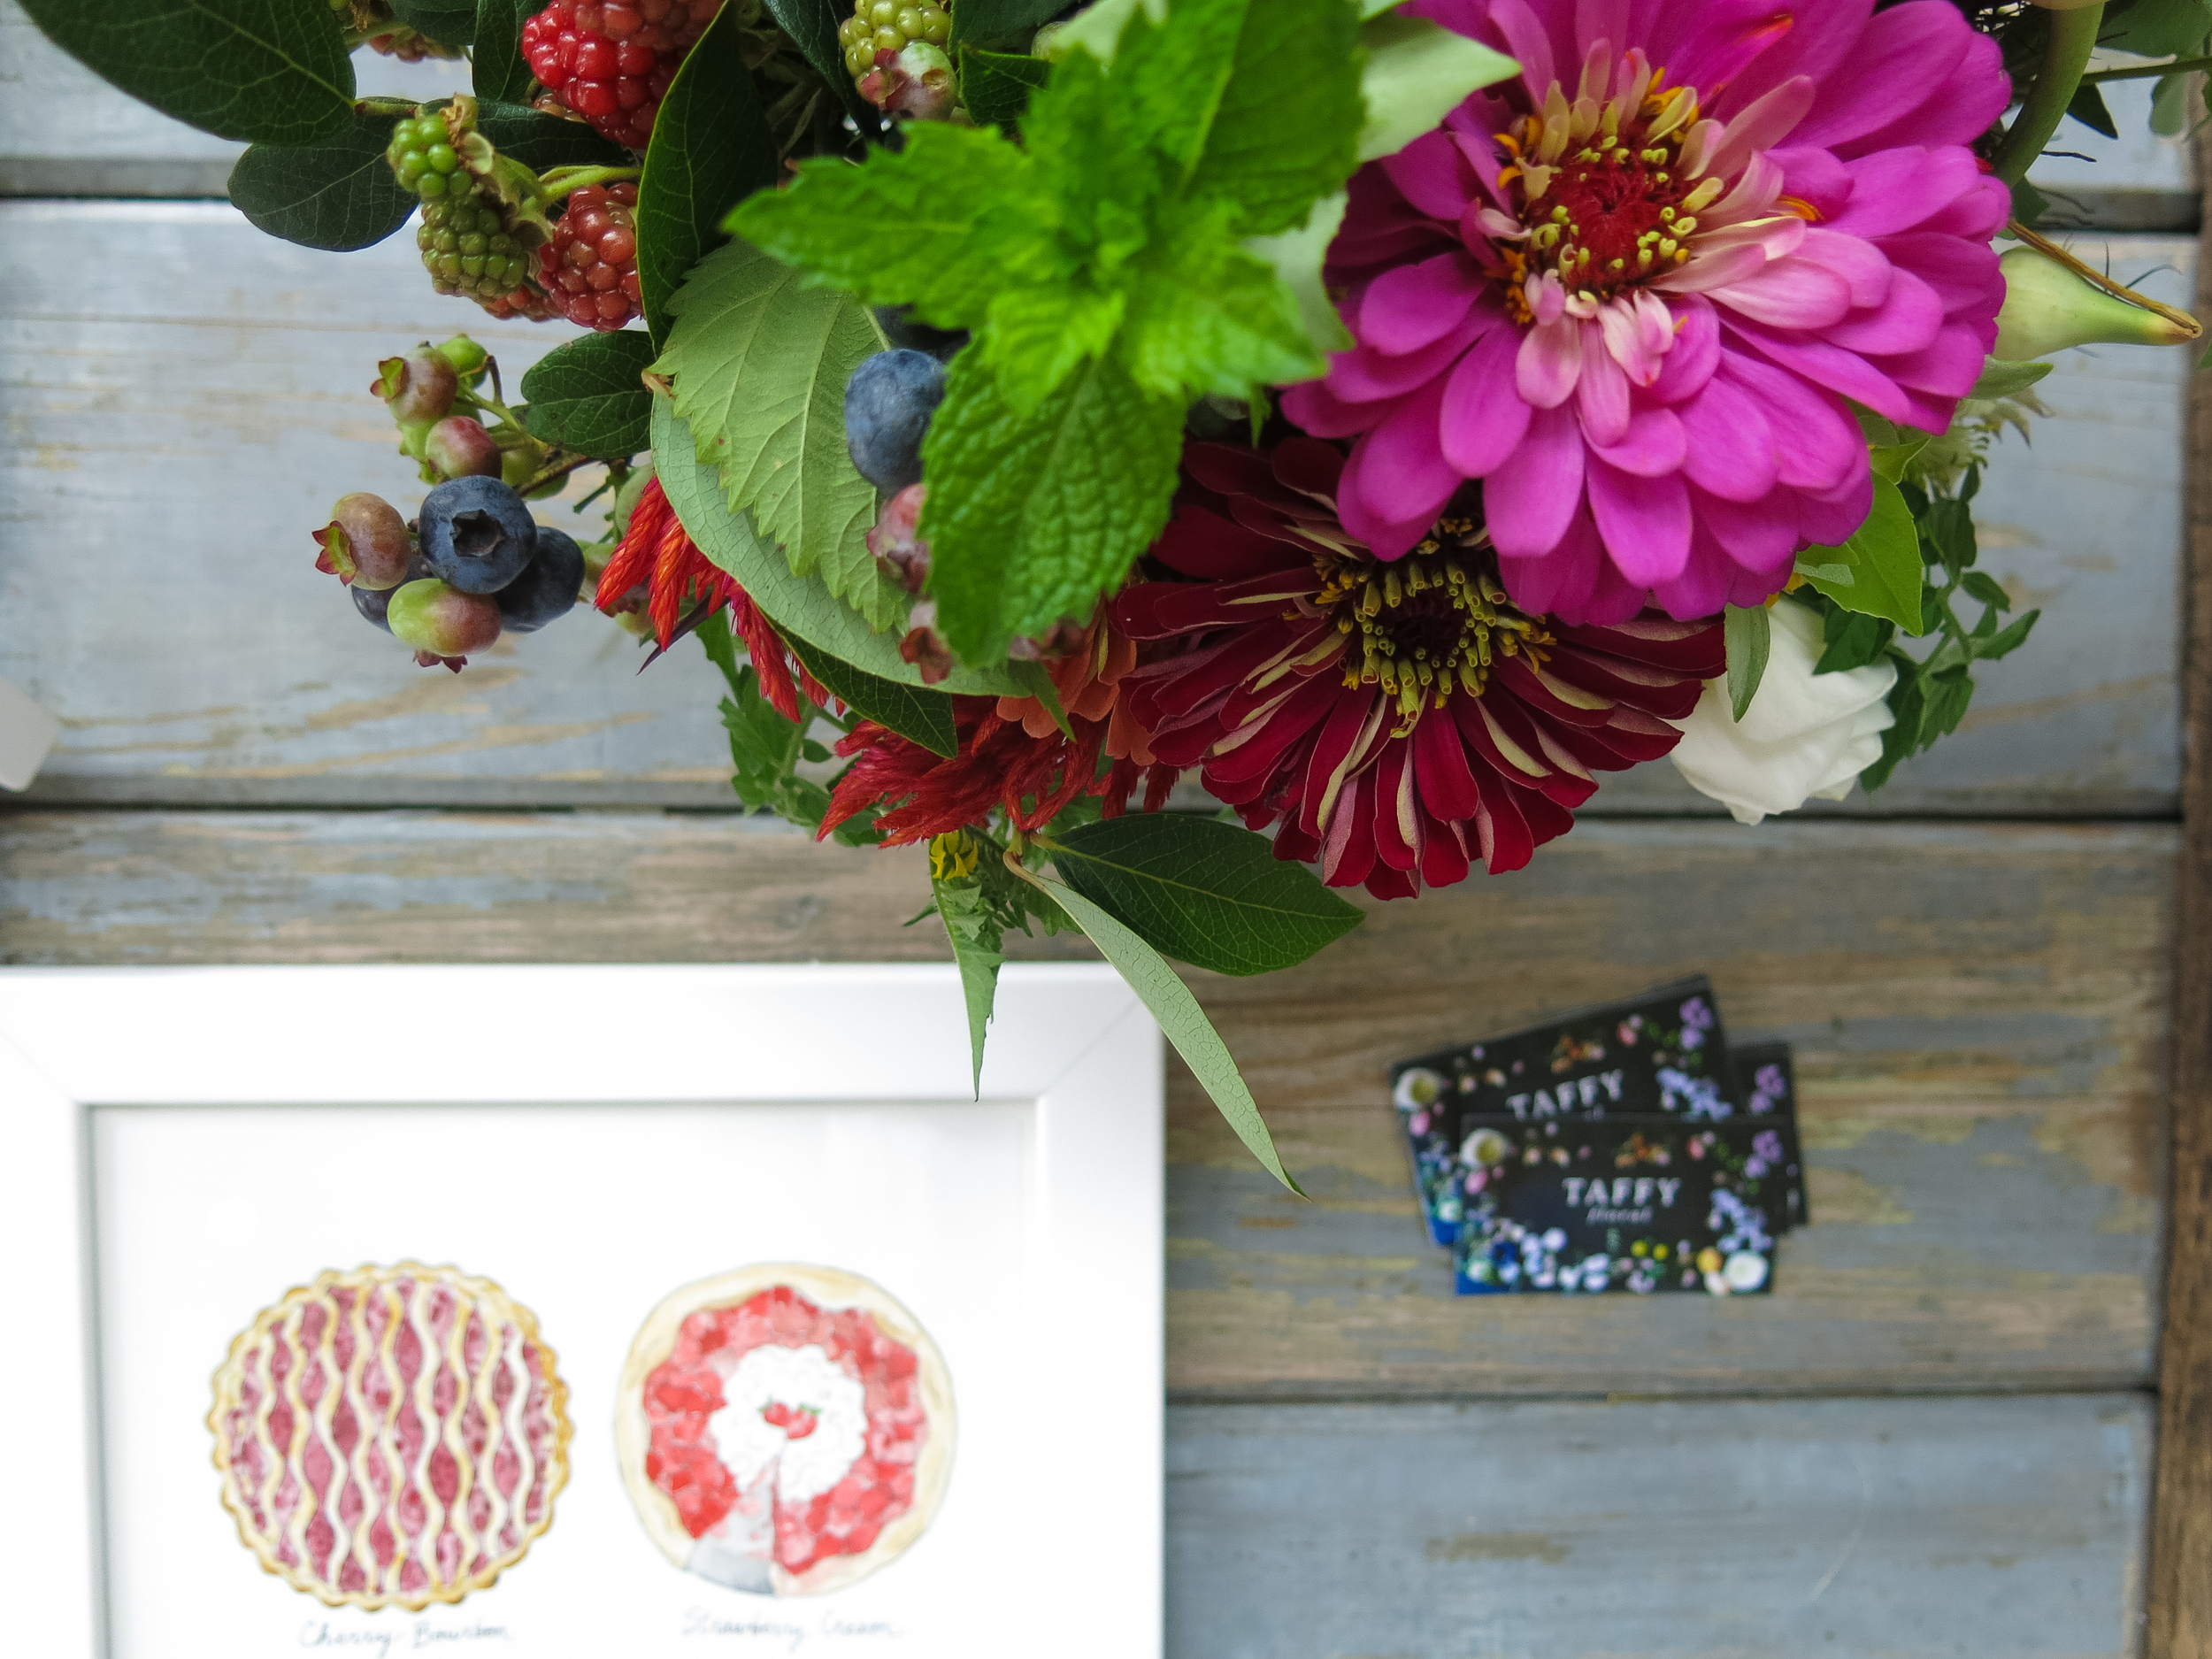 Marcella's work next to an arrangement by Taffy Floral.